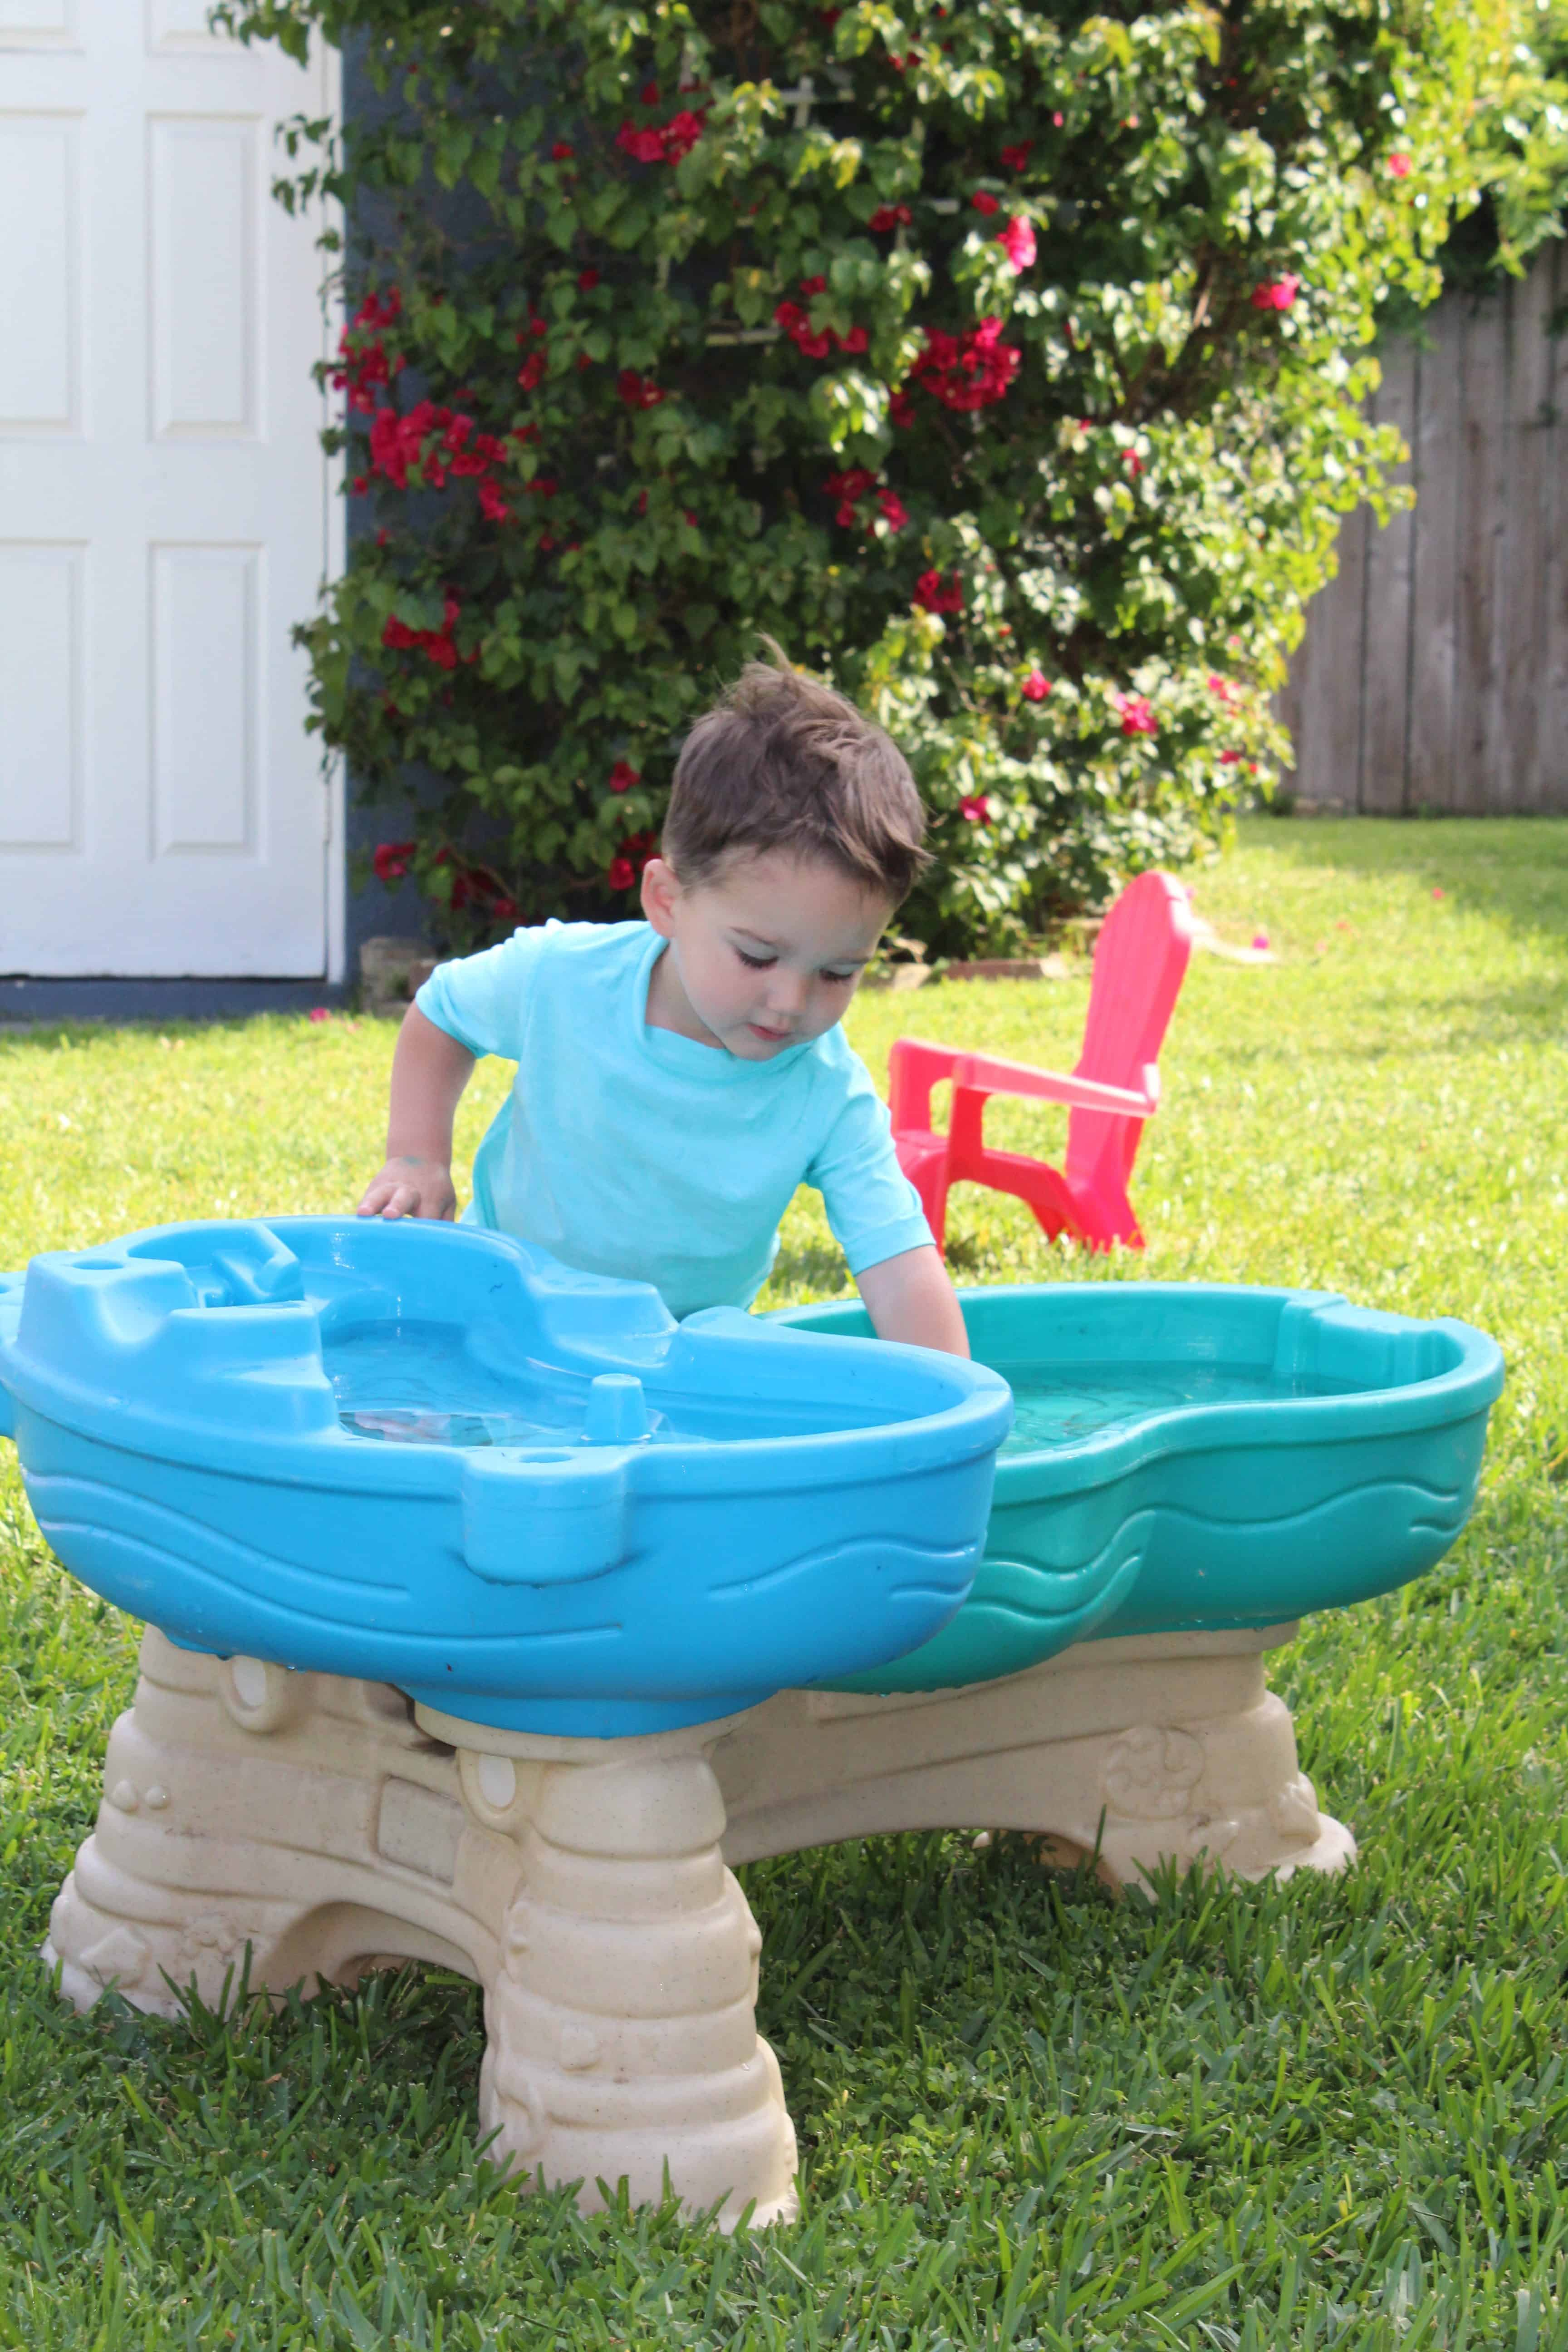 Toddler playing in water table.